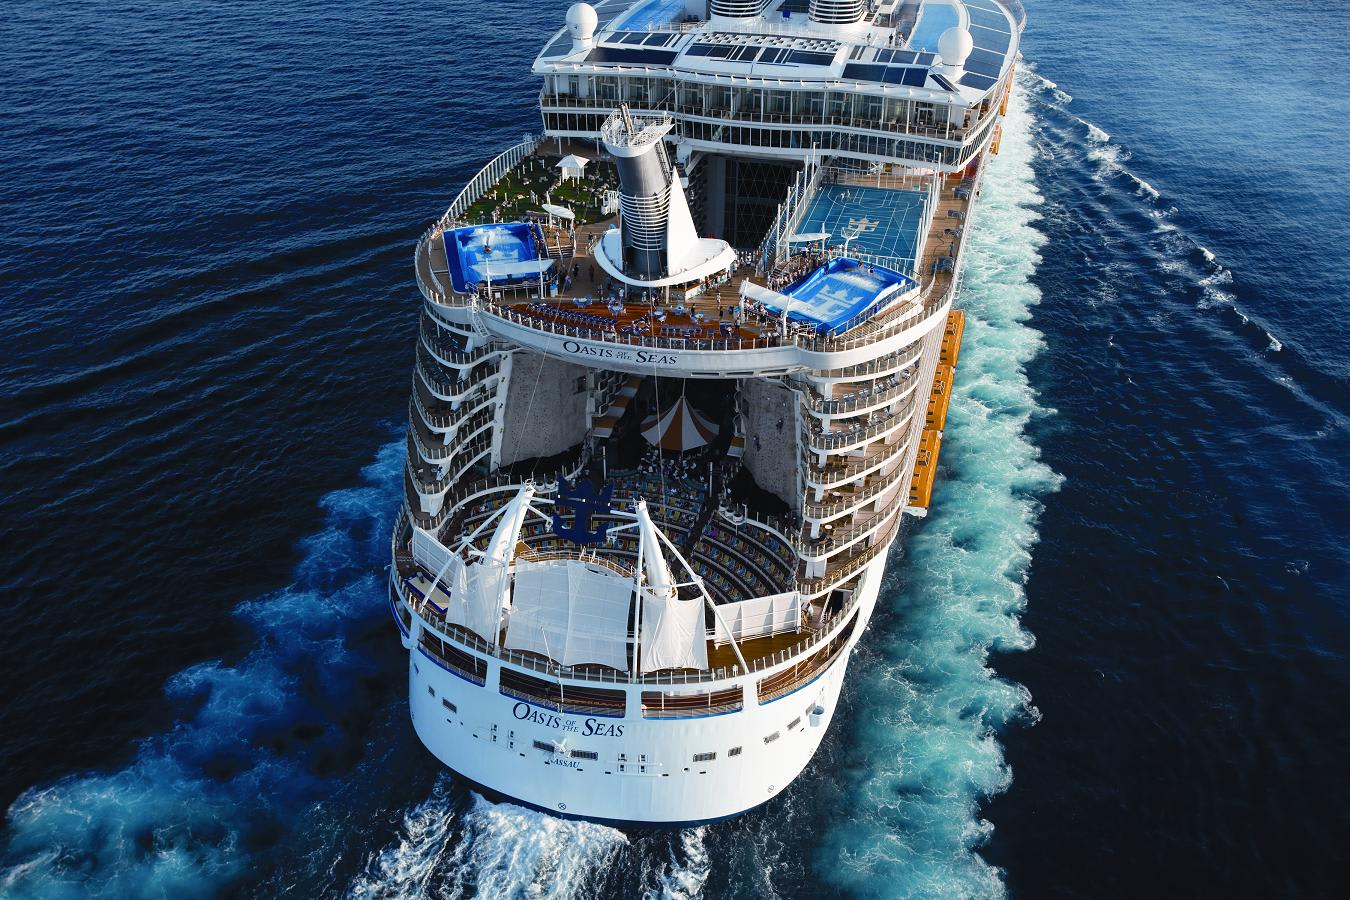 Cruise Planners: Aerial Oasis of the Seas - At Sea off Miami shoreline - Royal Caribbean International